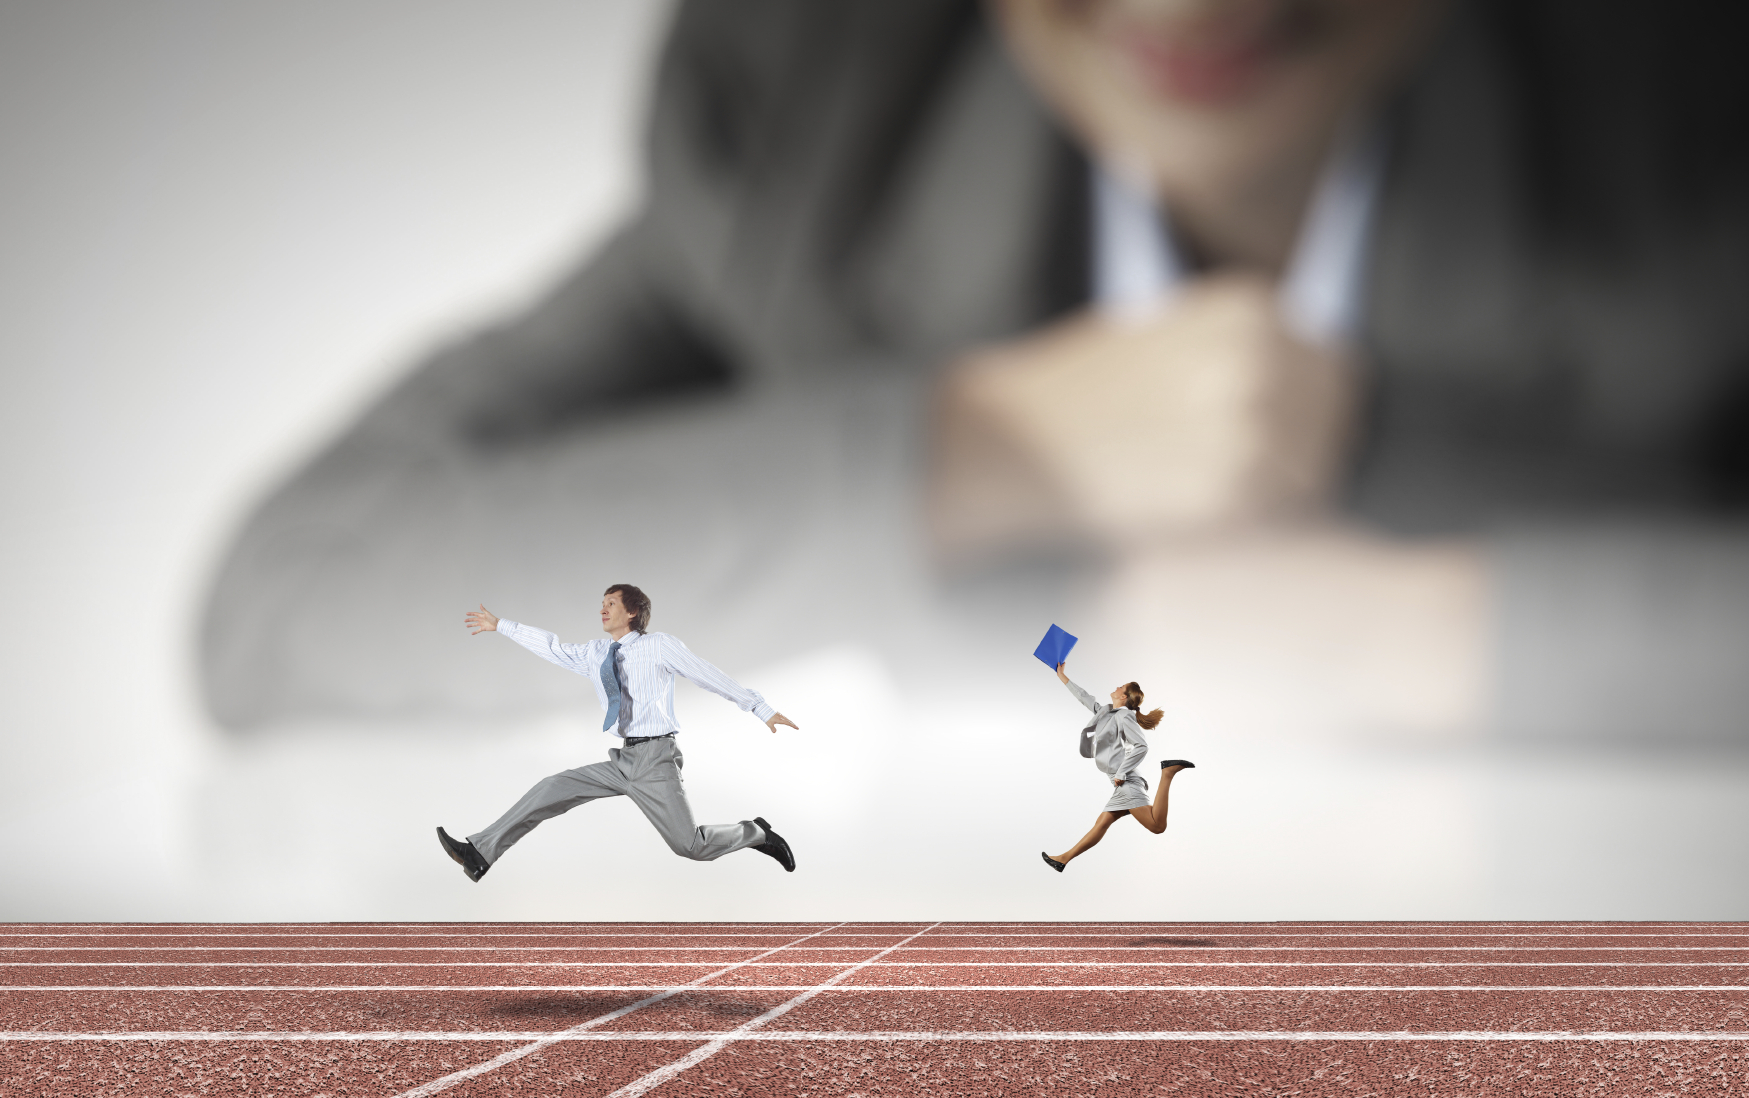 10 Things Your Competitors Can Teach You About Ethics